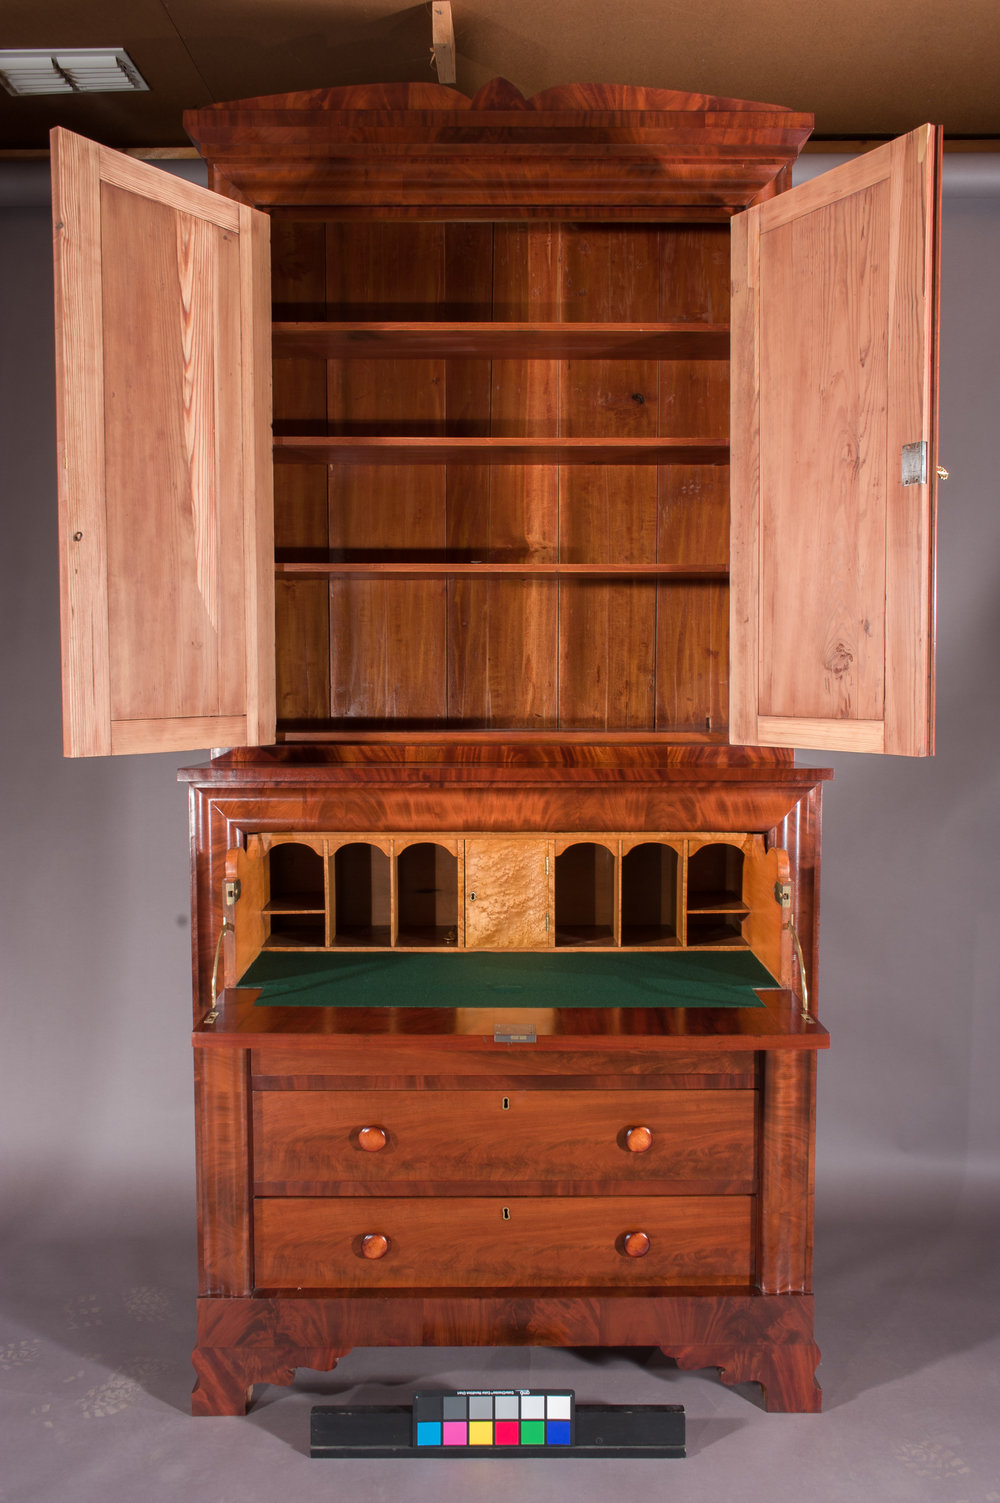 Secretary Bookcase completed - view of interior of bookcase